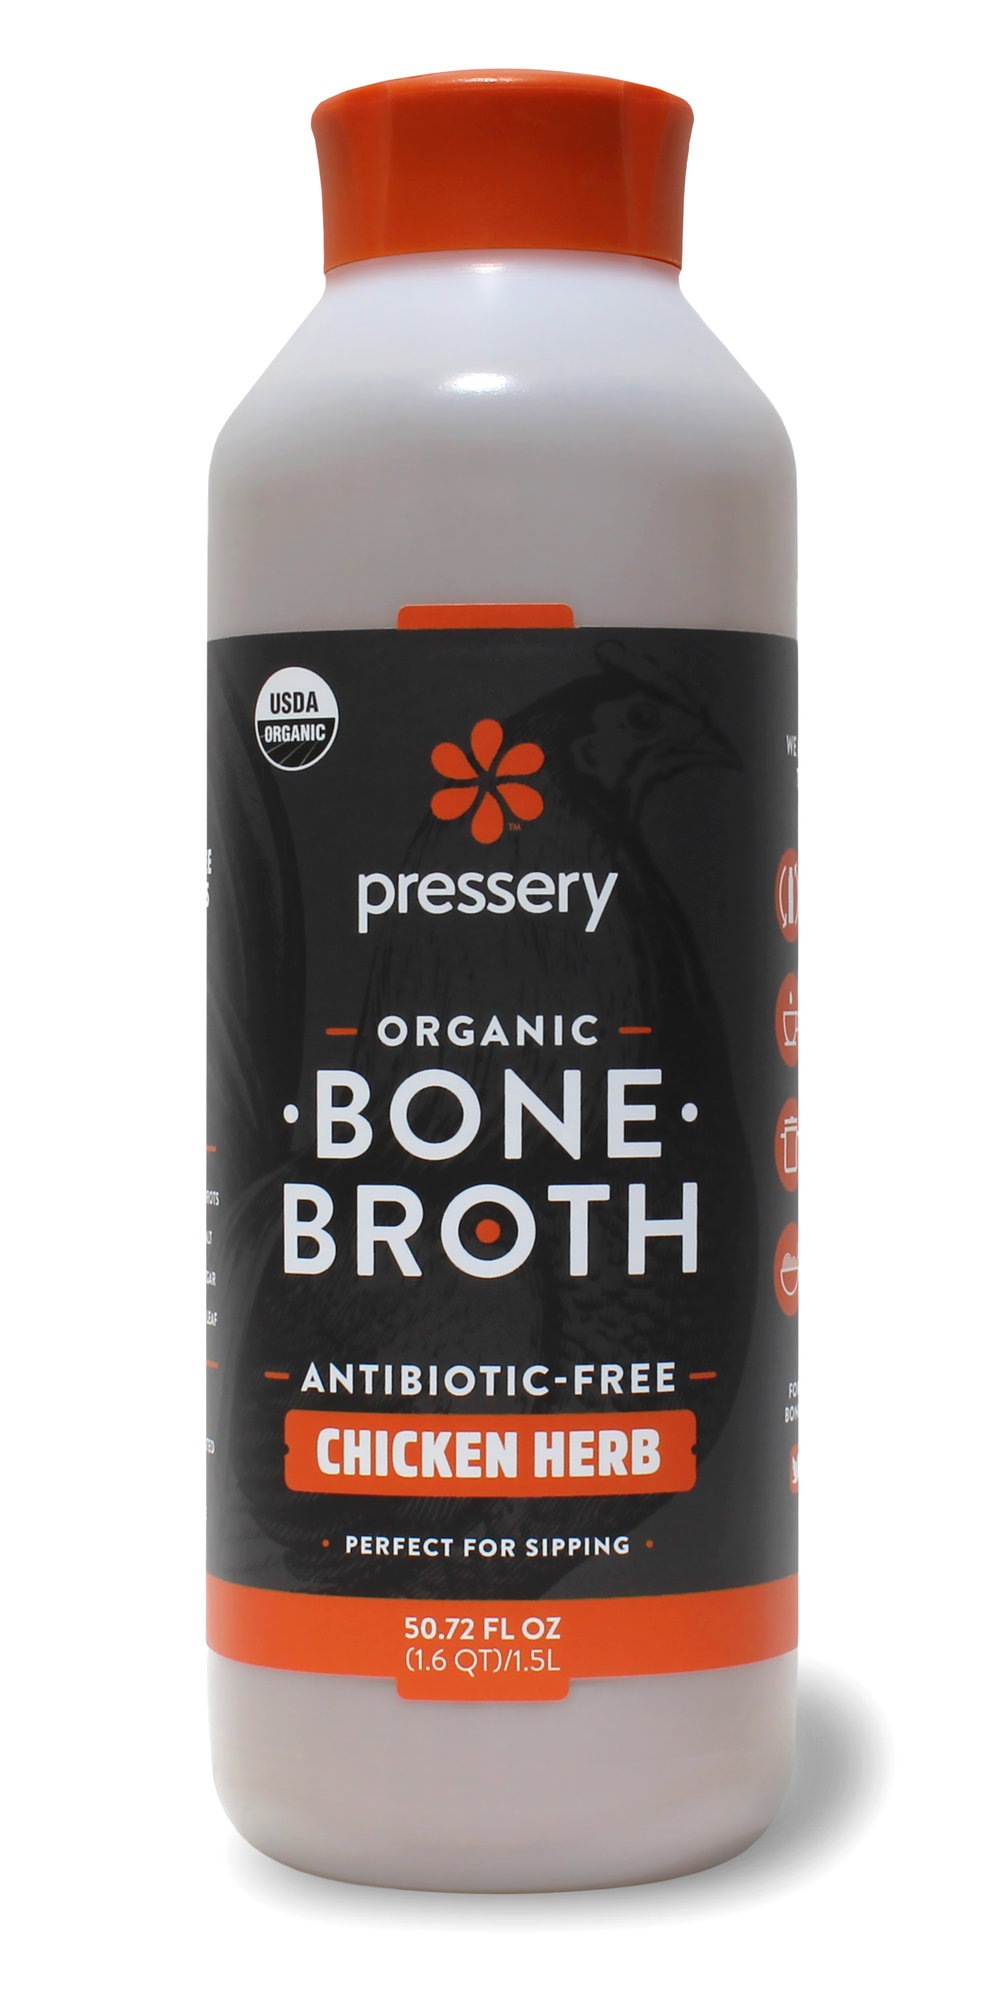 CHICKEN HERB - CERTIFIED USDA ORGANIC, MADE WITH ANTIBIOTIC-FREE CHICKEN BONES